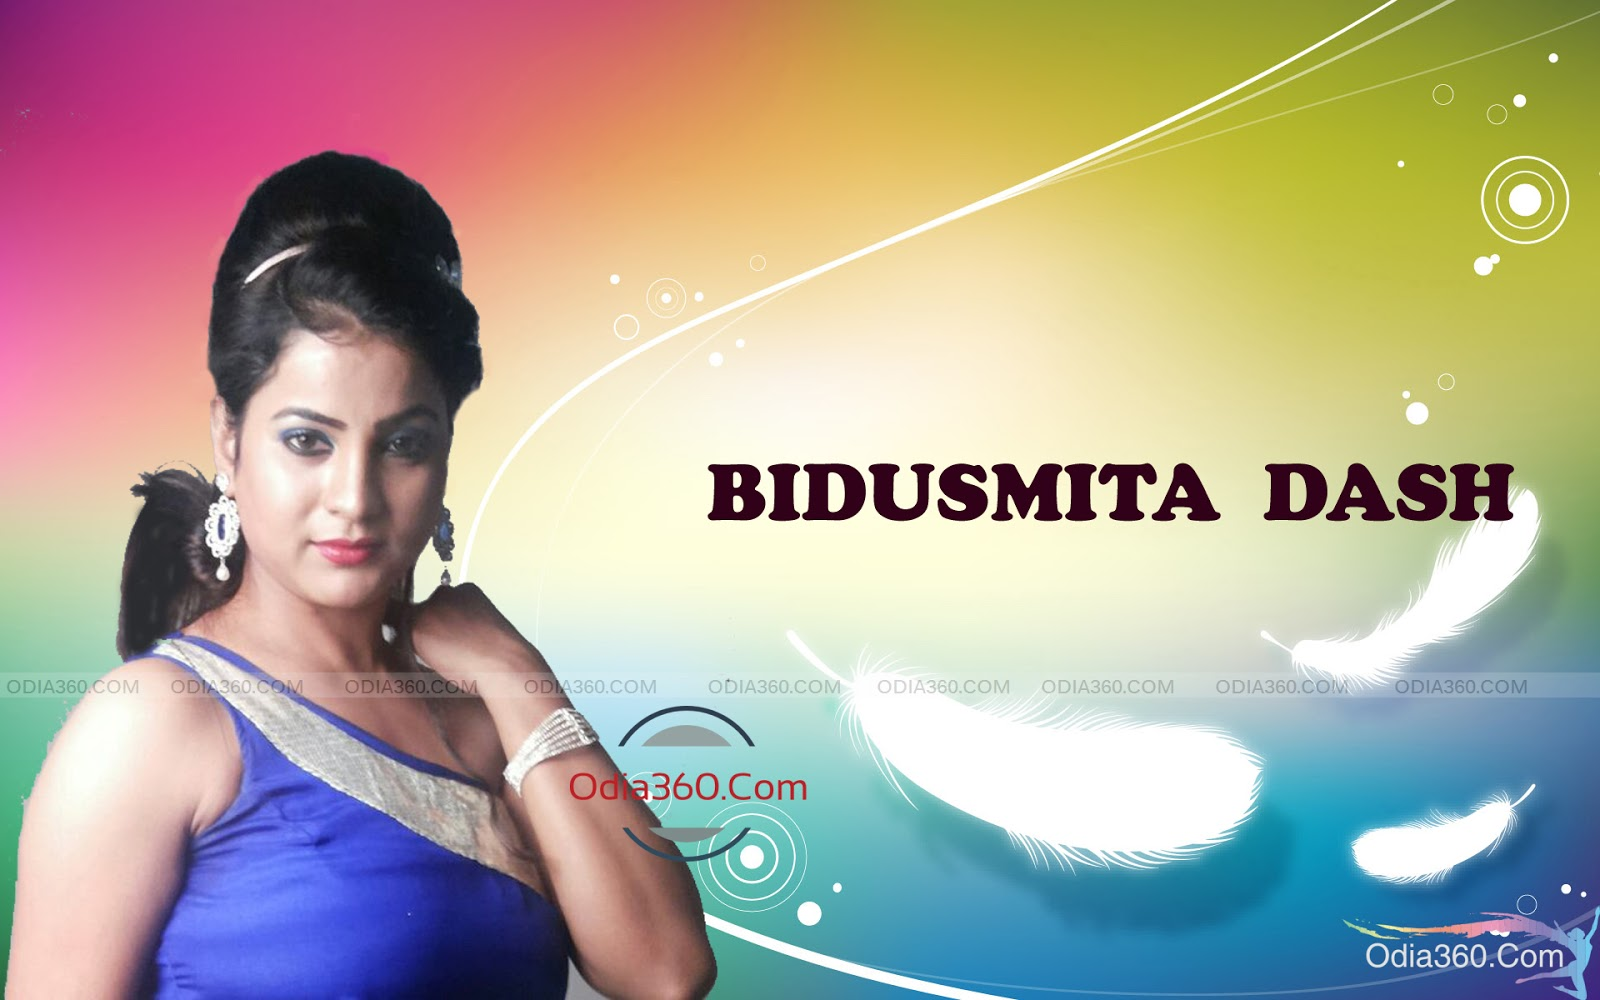 bidusmita biography definition